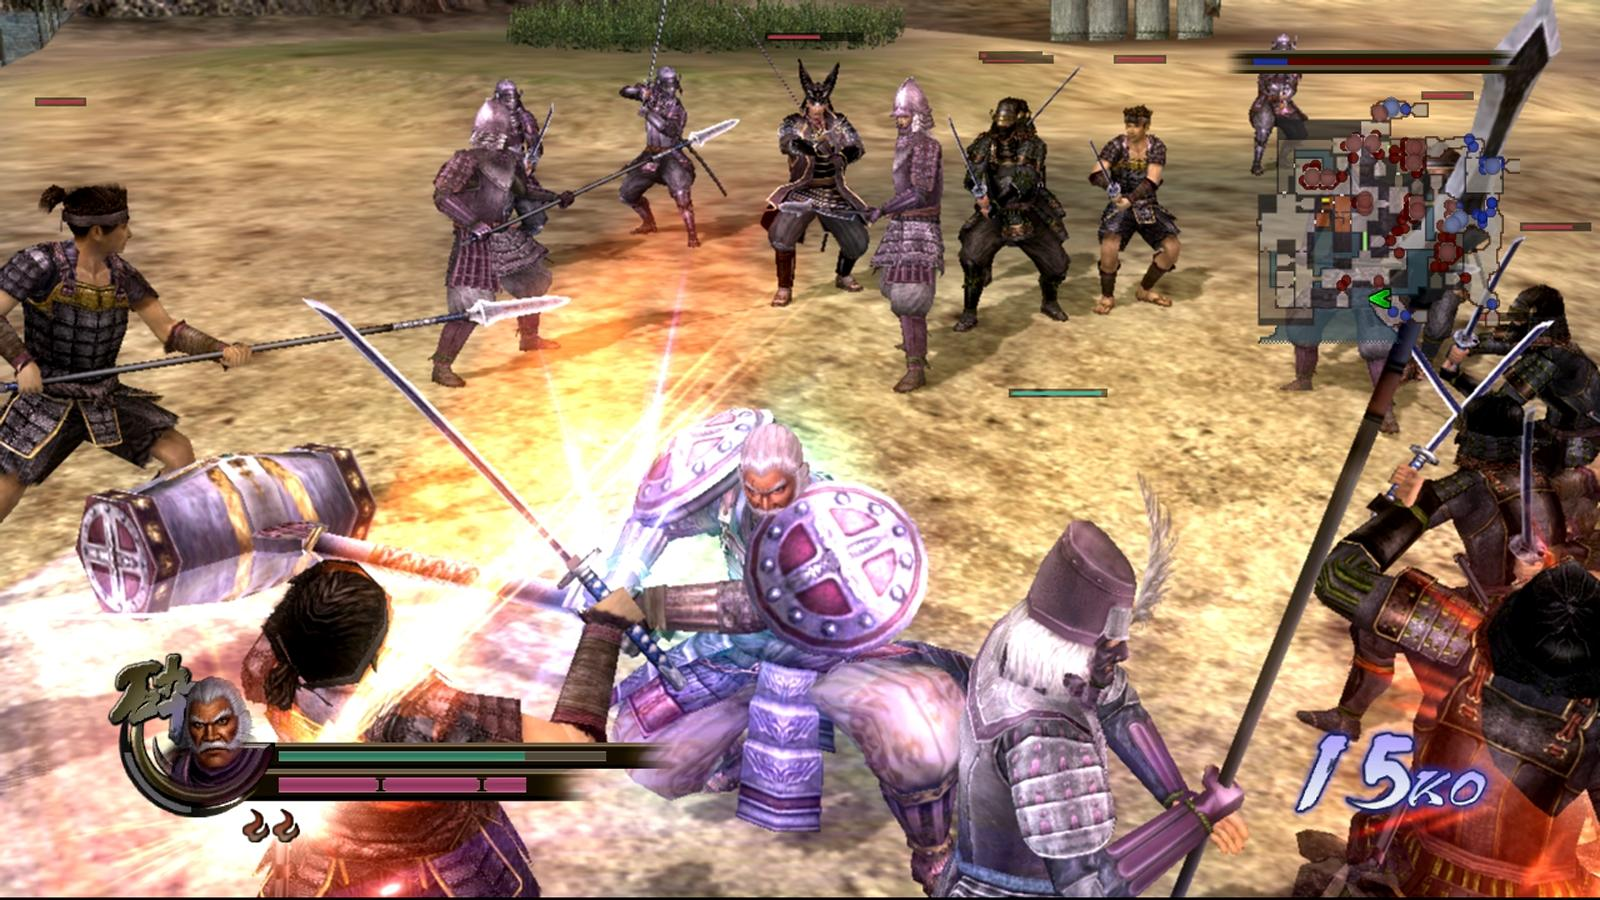 Samurai Warriors 2 Free Game Download ... - Free PC Games Den